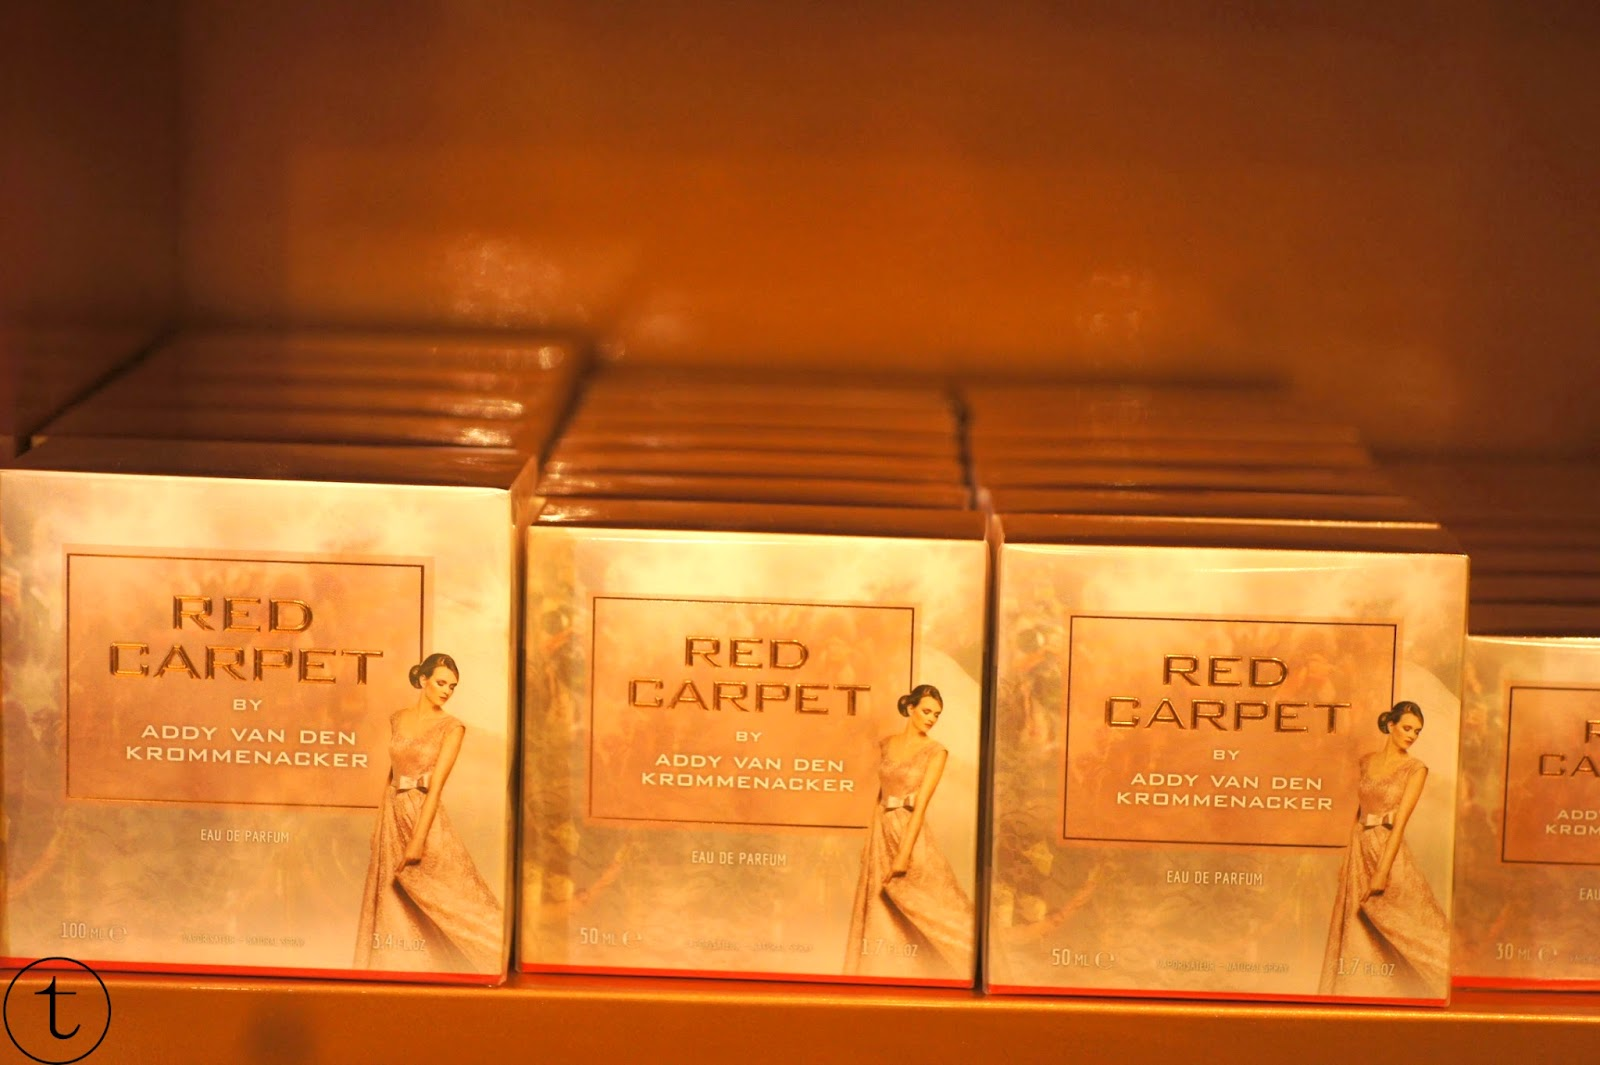 red carpet parfum by addy van den krommenacker